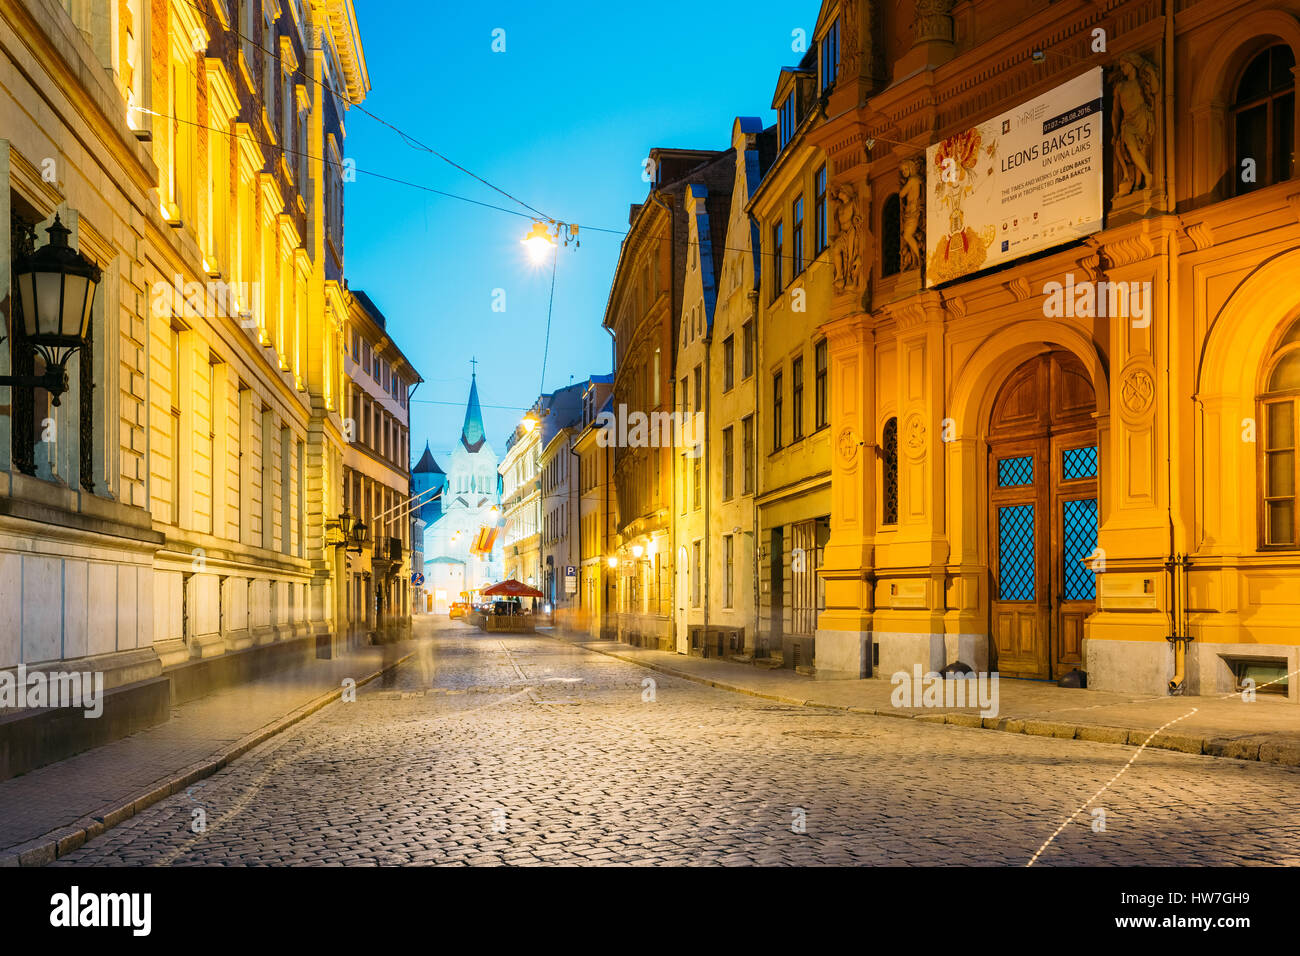 Riga, Latvia - July 1, 2016: Evening View Of Pils Street With Ancient Architecture In Bright Warm Yellow Illumination - Stock Image